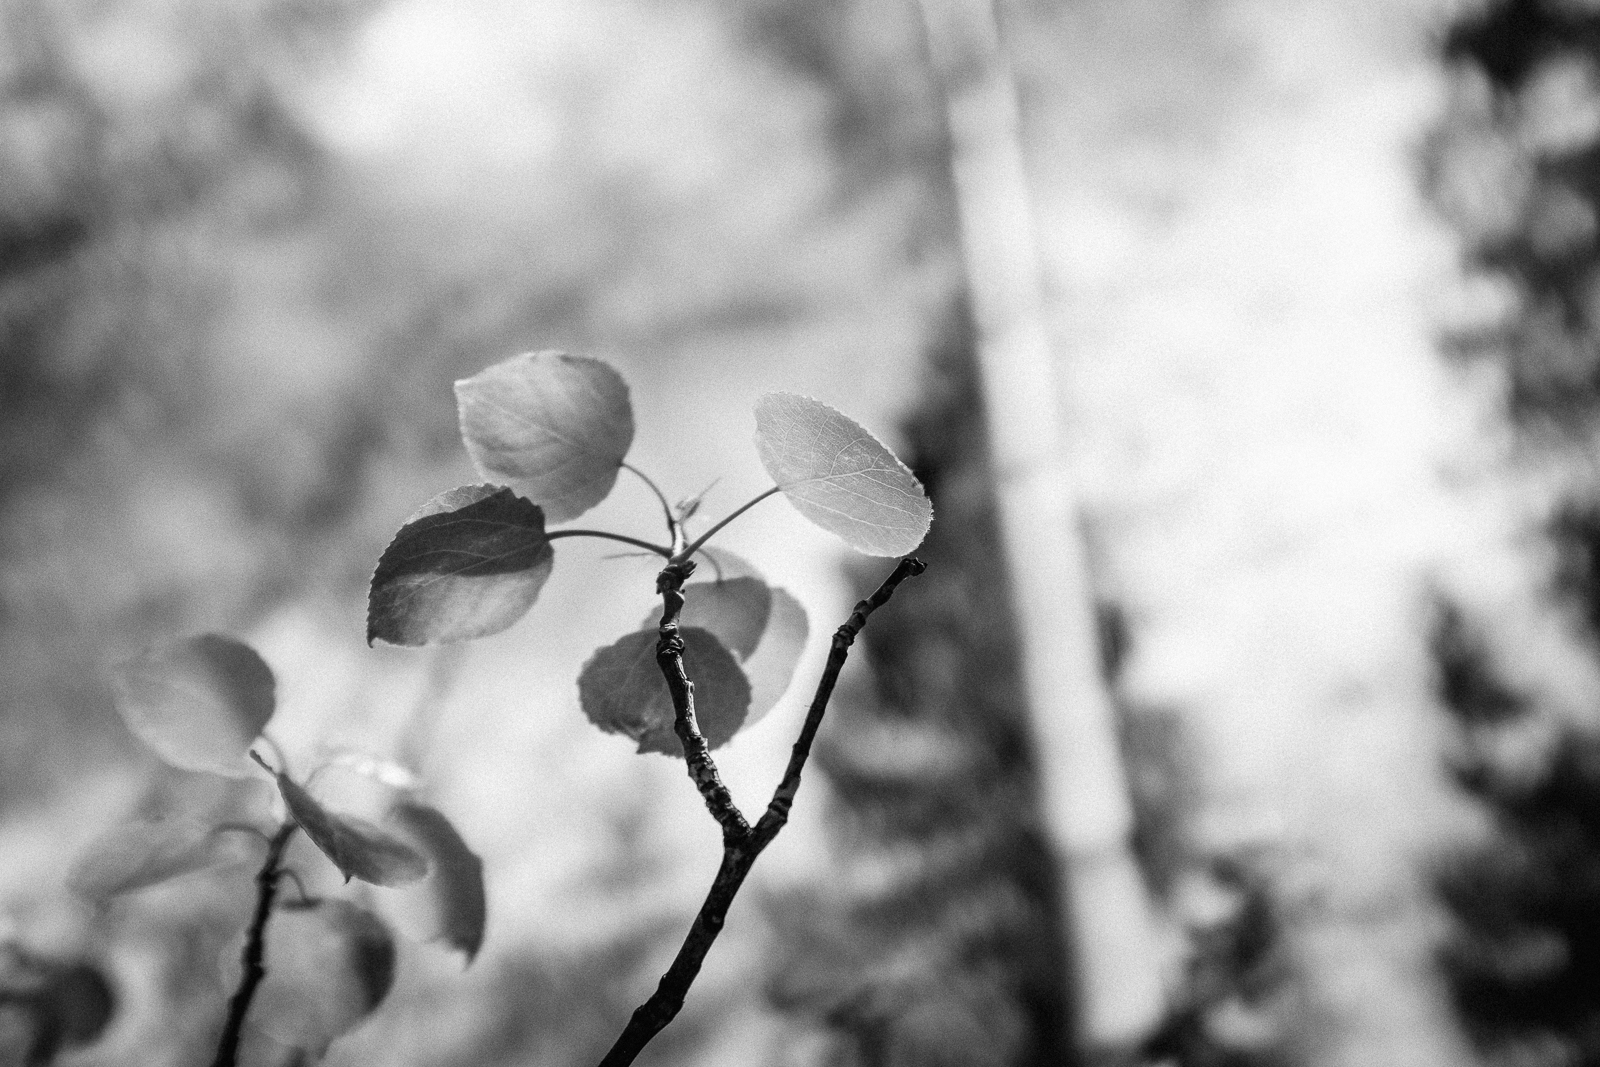 Day 158- 365 Day B&W Photo Challenge - The glow of aspen leaves in the sunshine on a warm spring day. - Fuji X100F, Acros R Film Simulation